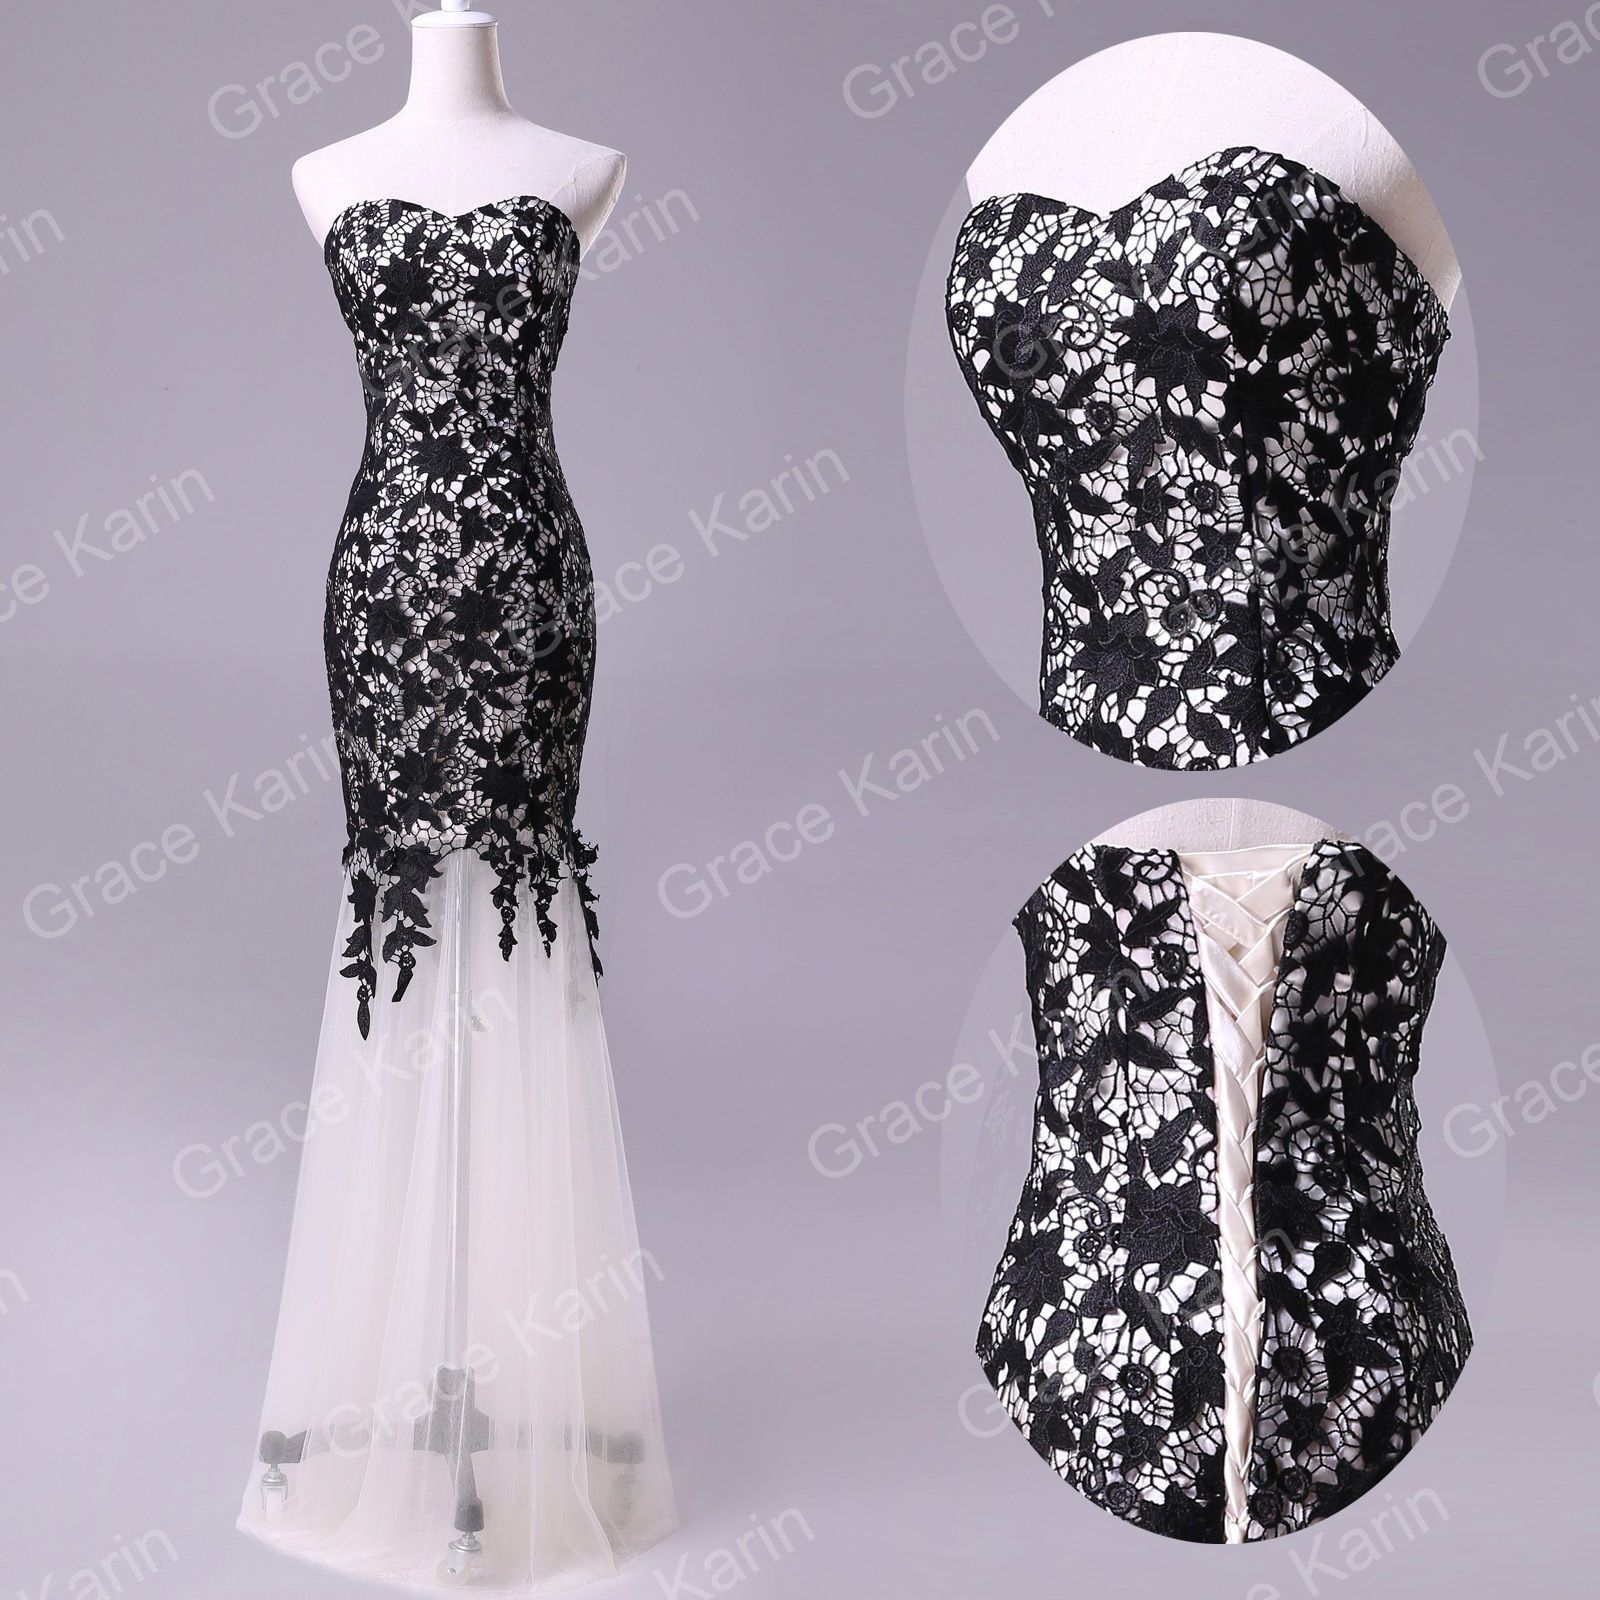 New black lace prom ball cocktail party wedding dress bridal formal